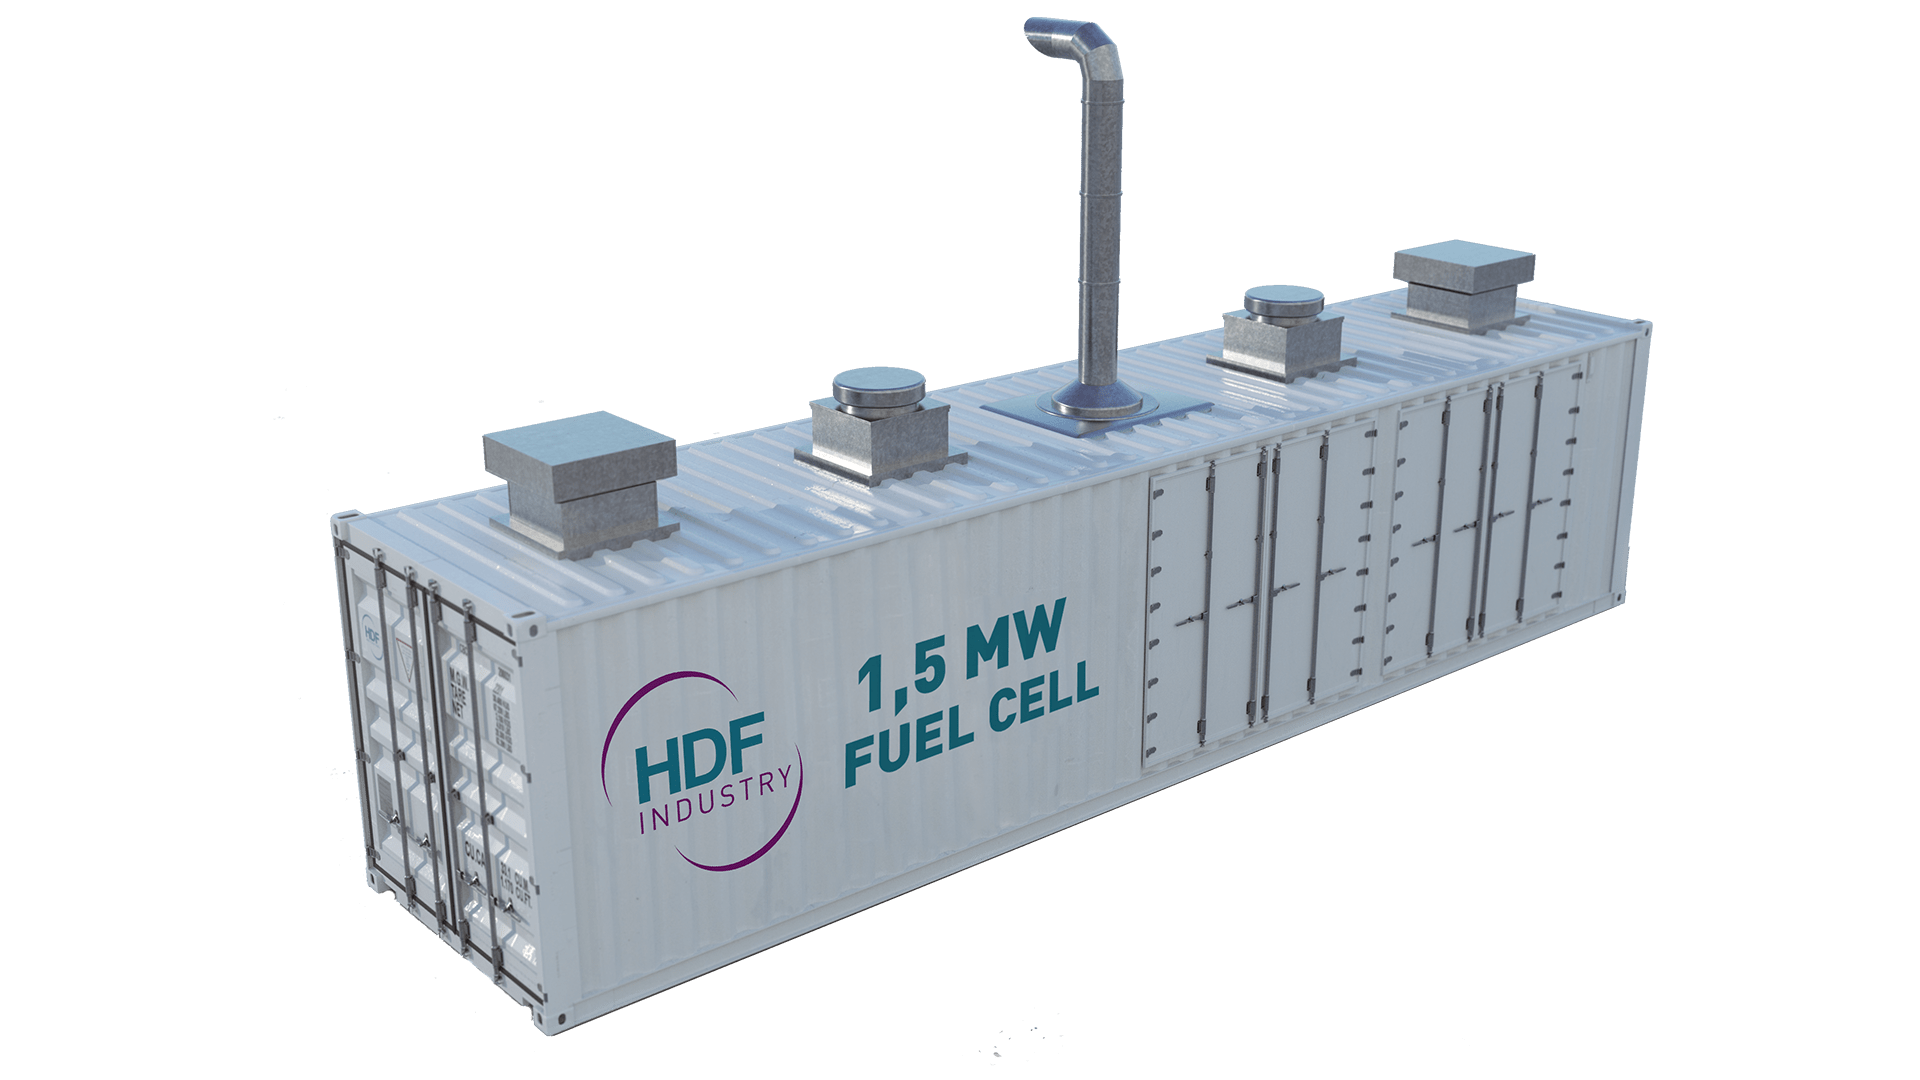 HDF Container